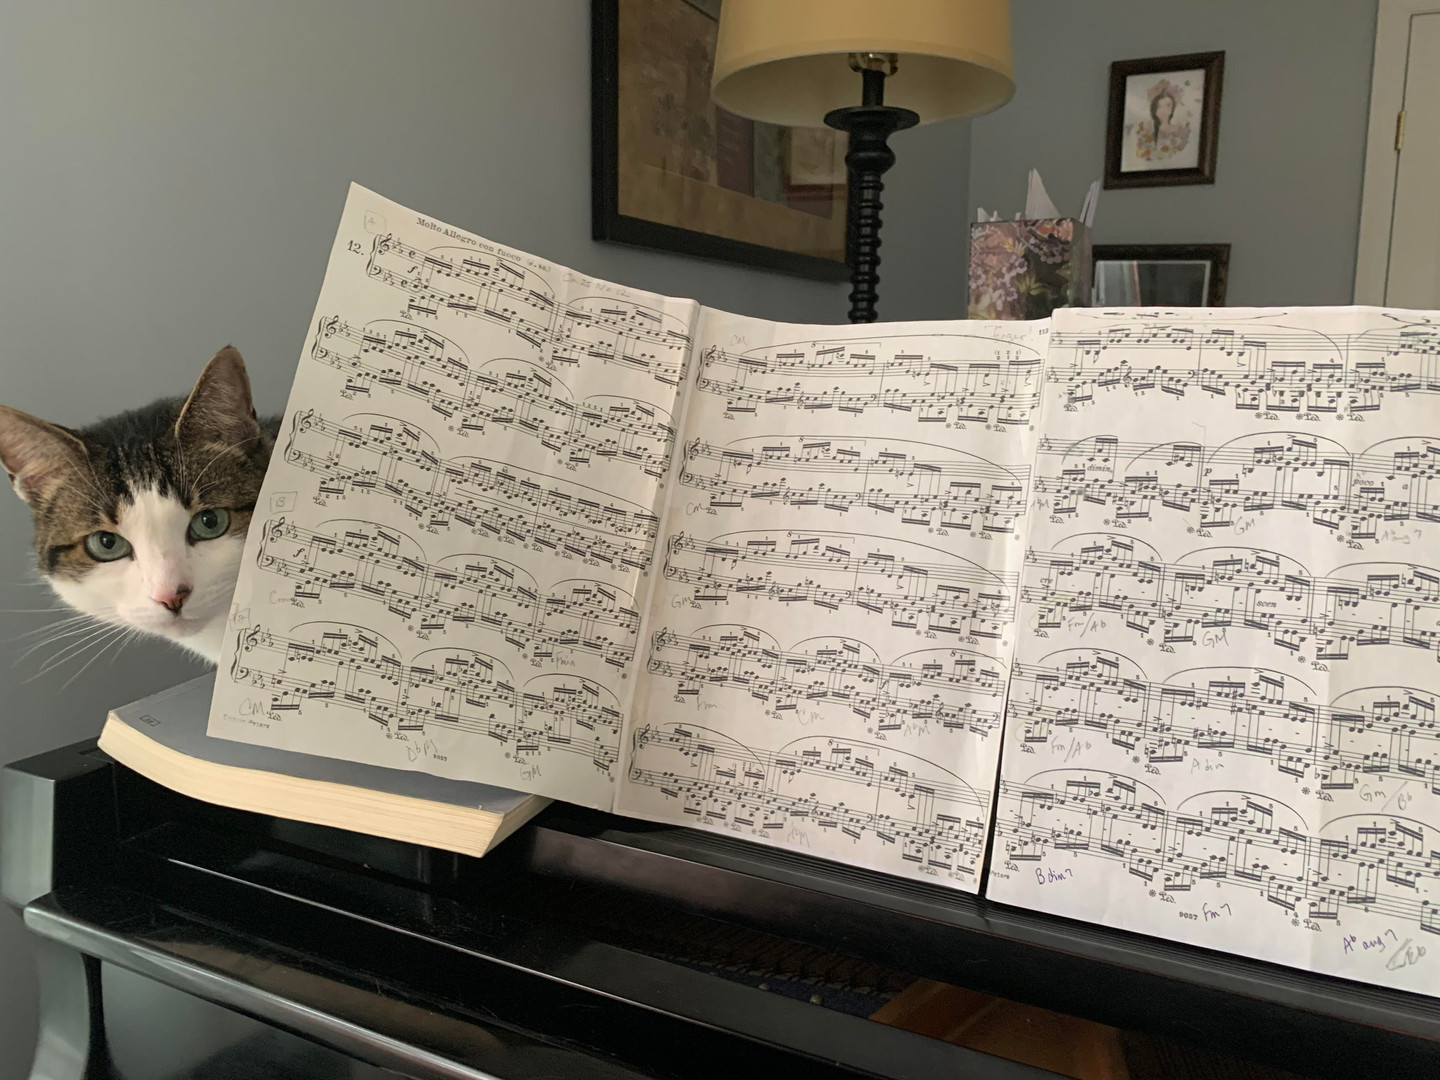 Pixie's Cat behind the music sheet